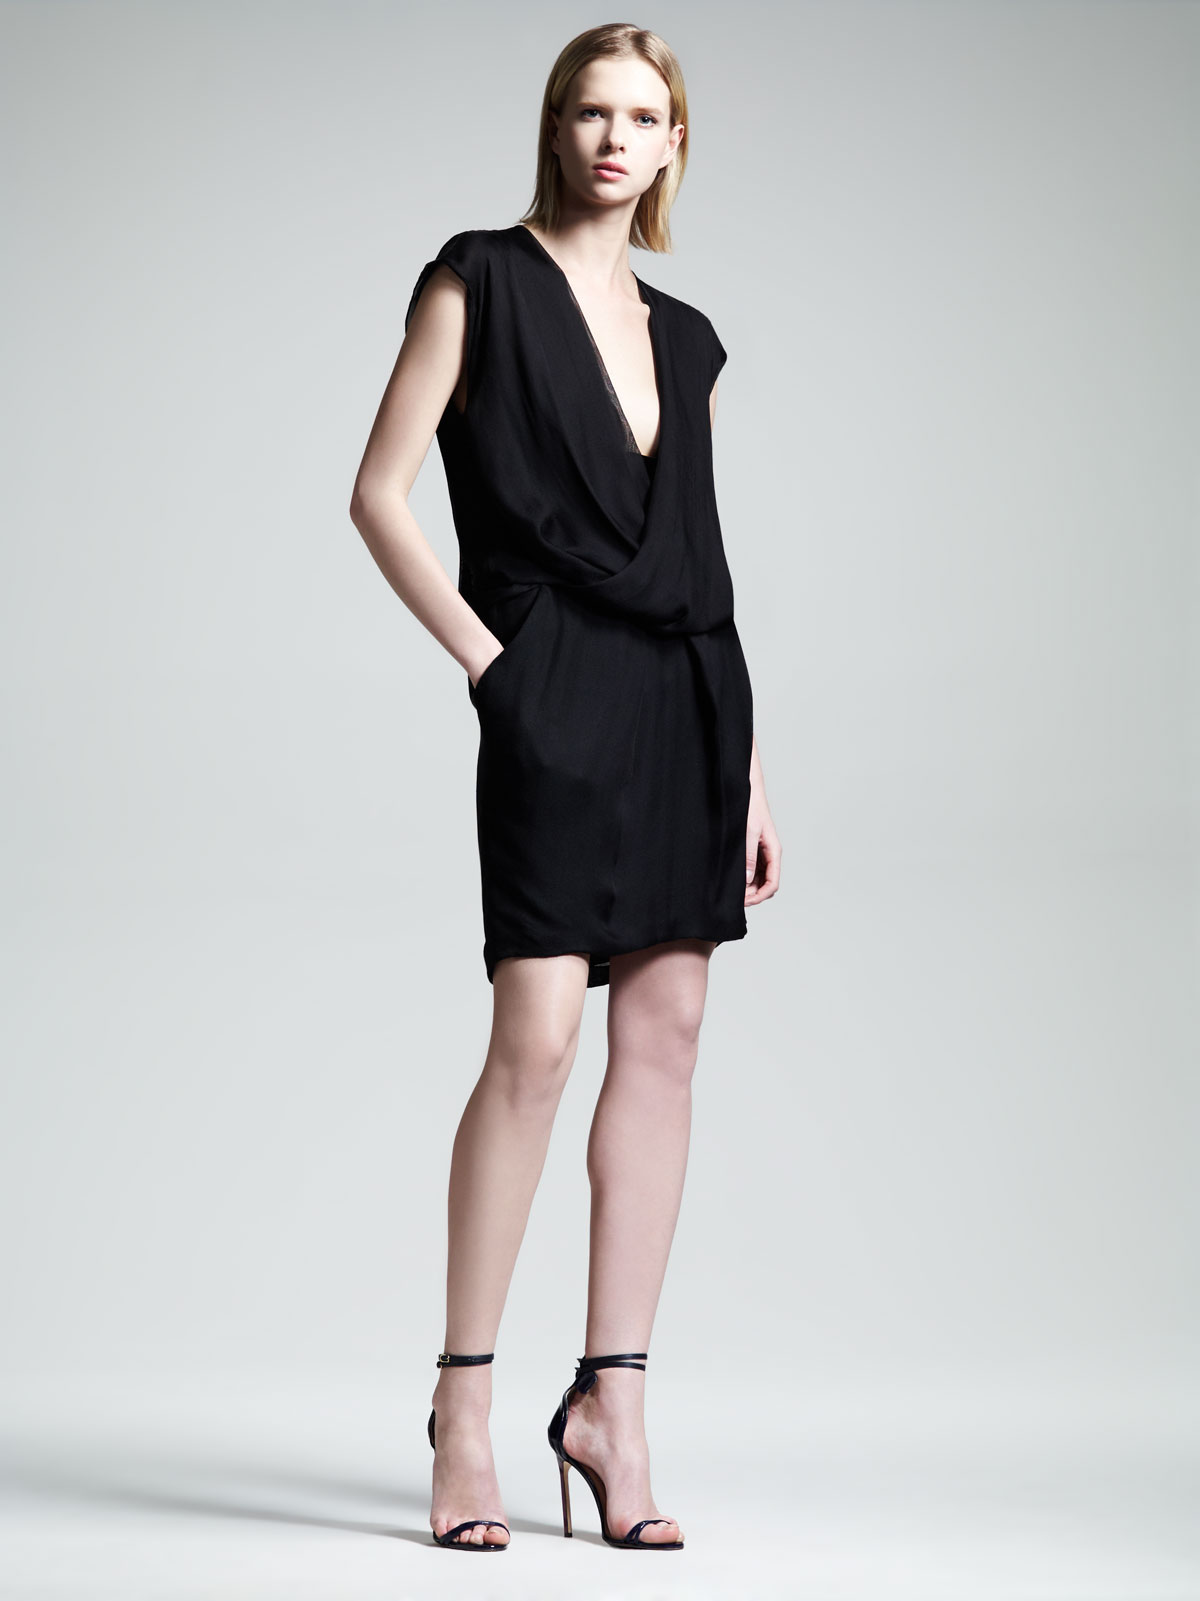 Lyst - Alexander Wang Womens Draped Pocket Dress in Black